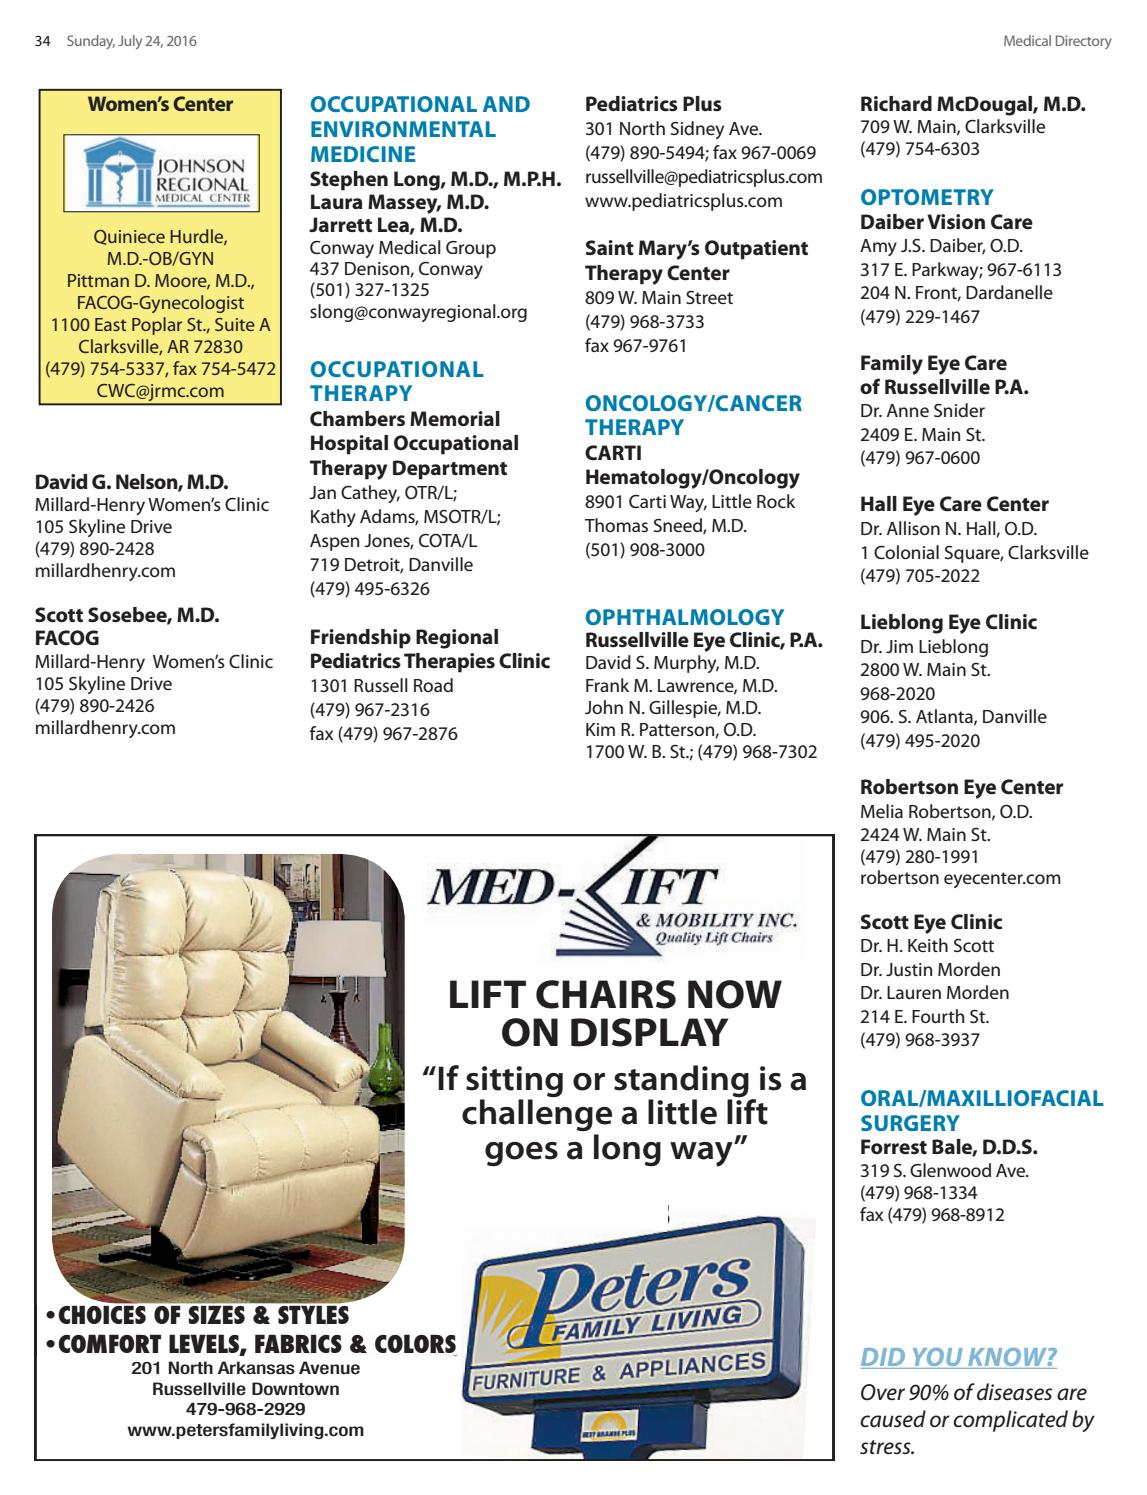 2016 Medical Directory by The Courier - issuu